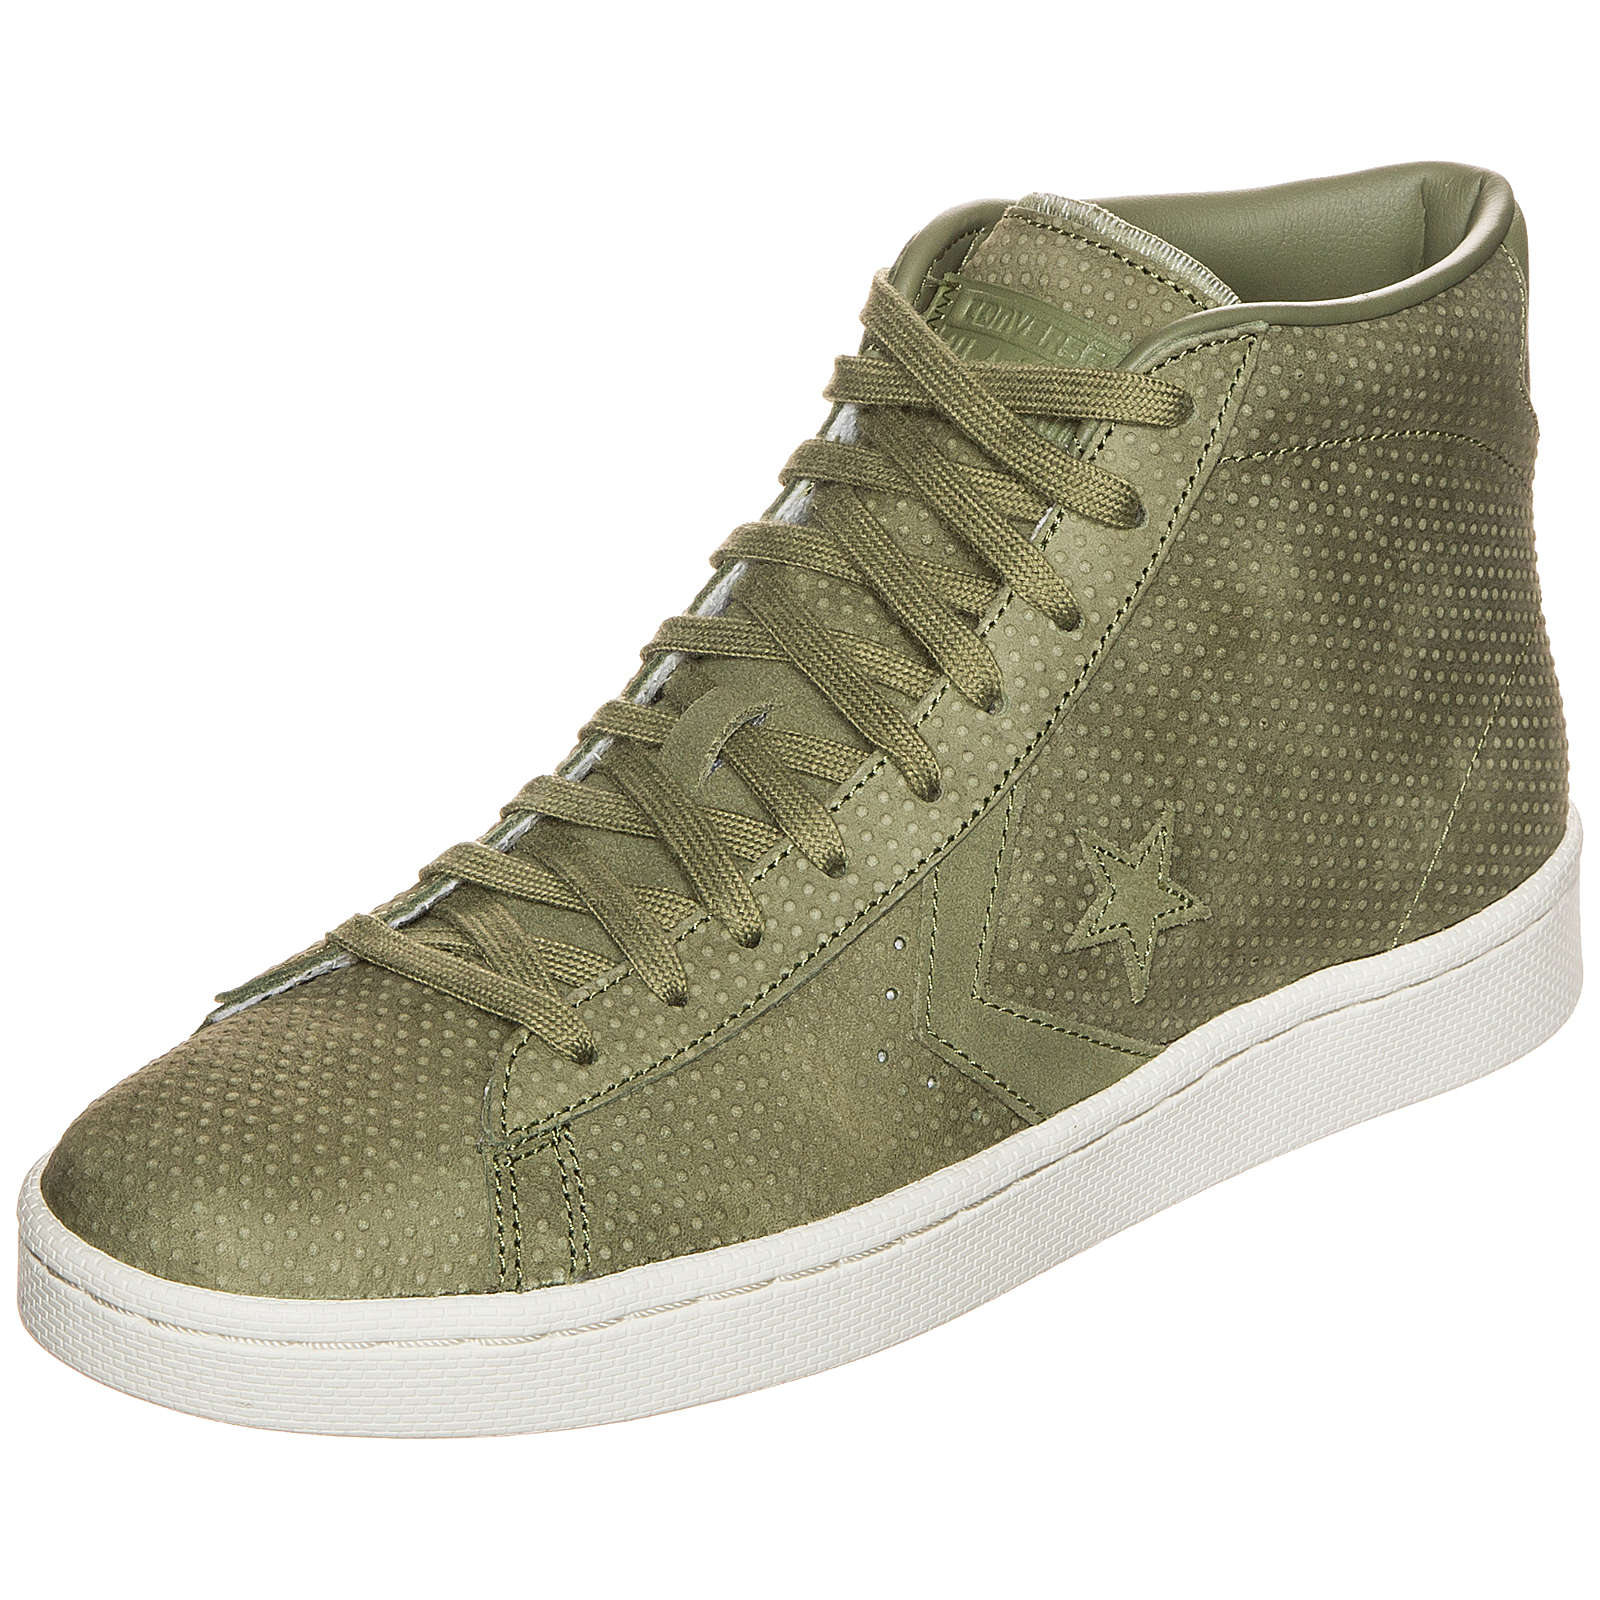 Converse Pro Leather 76 Lux Leather Mid Sneakers grün Gr. 44